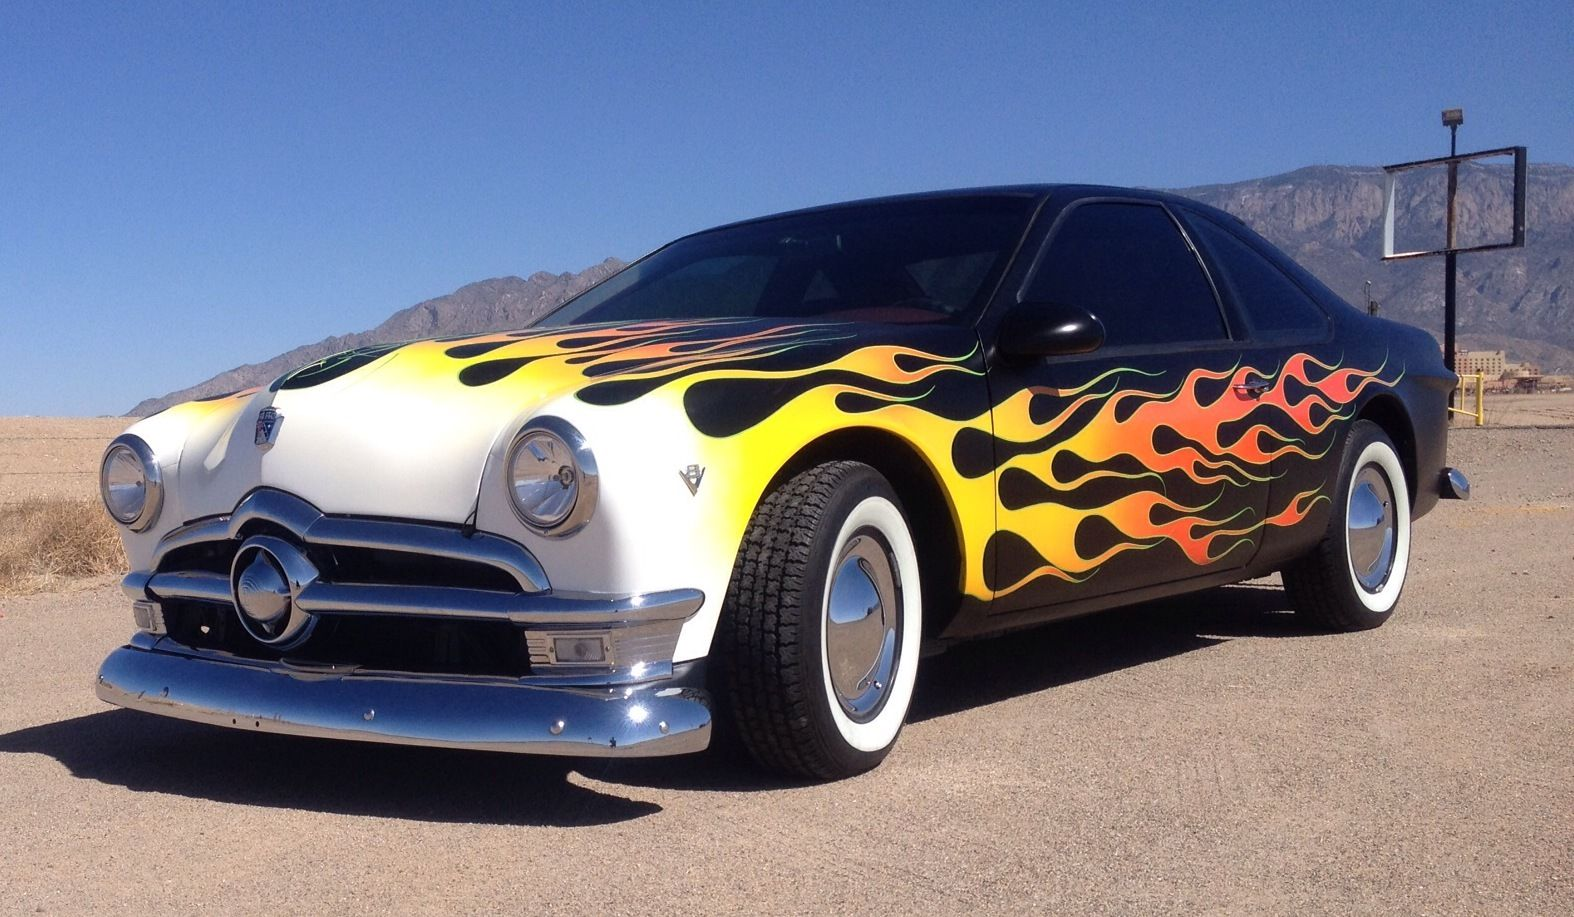 1996 Ford Thunderbird Lx Custom Hot Rod For Sale